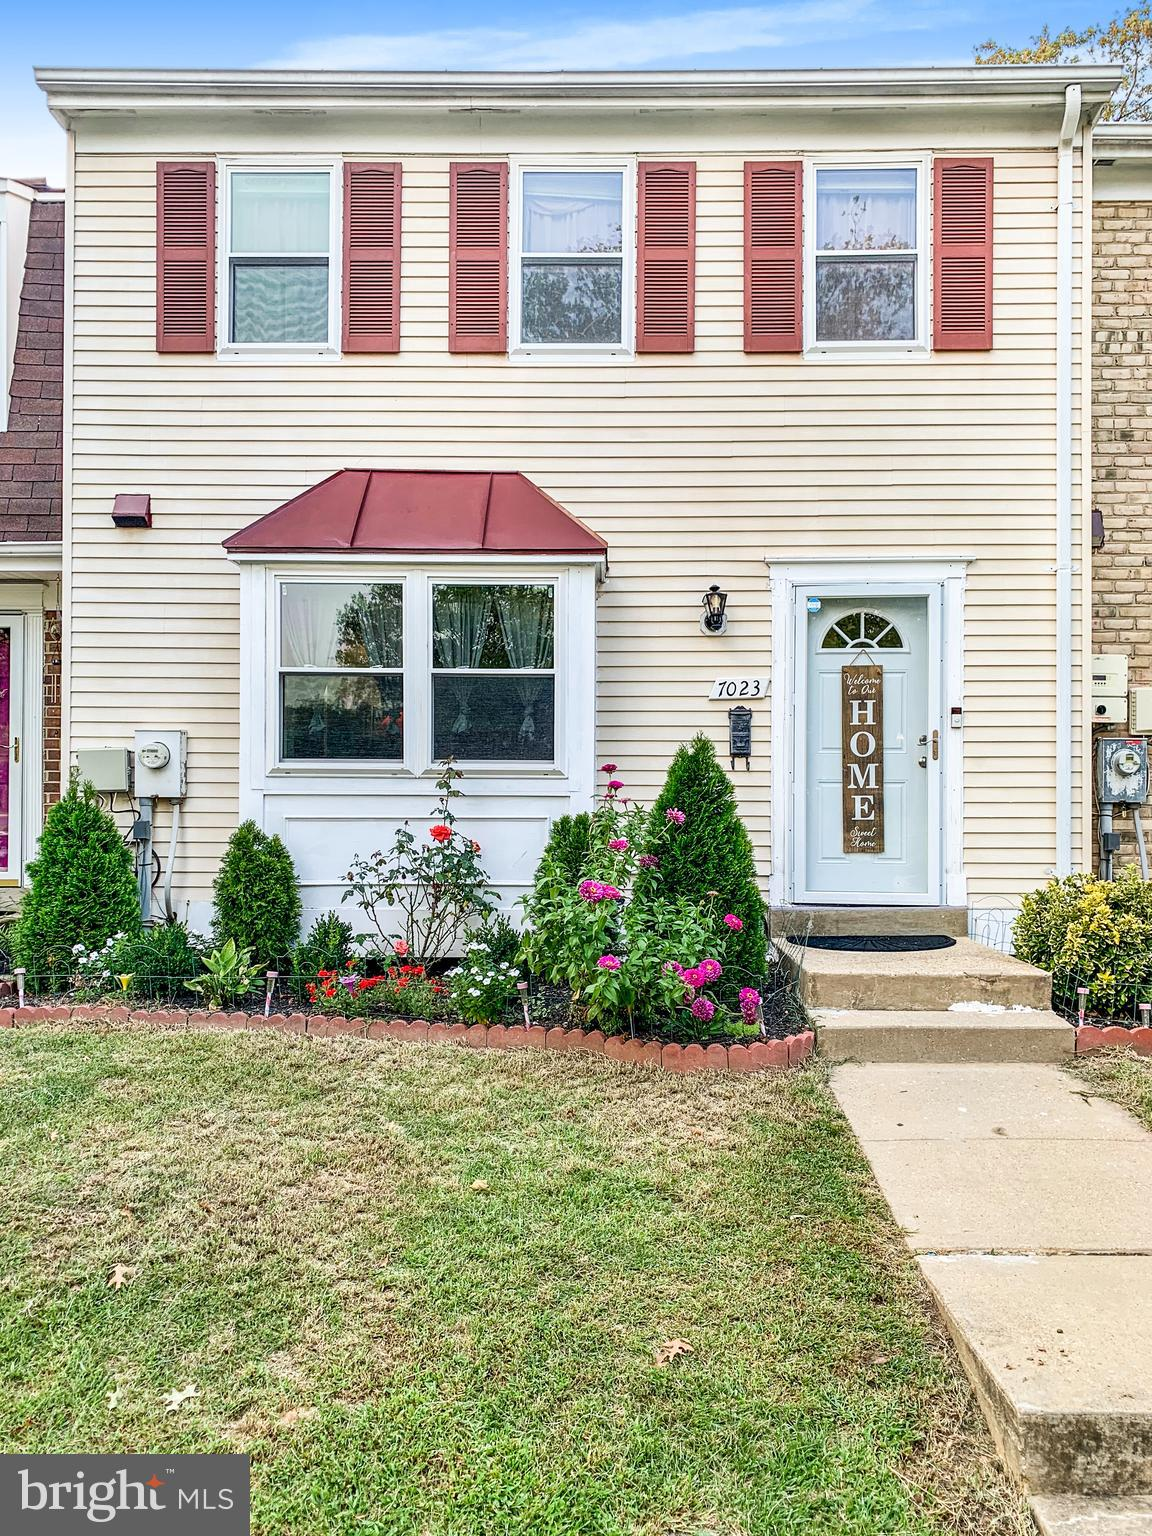 MUST SEE THE INSIDE! THIS BEAUTIFUL TOWNHOUSE LOCATED IN WOODSTREAM VILLAGE COMMUNITY HAS 3 BEDROOM